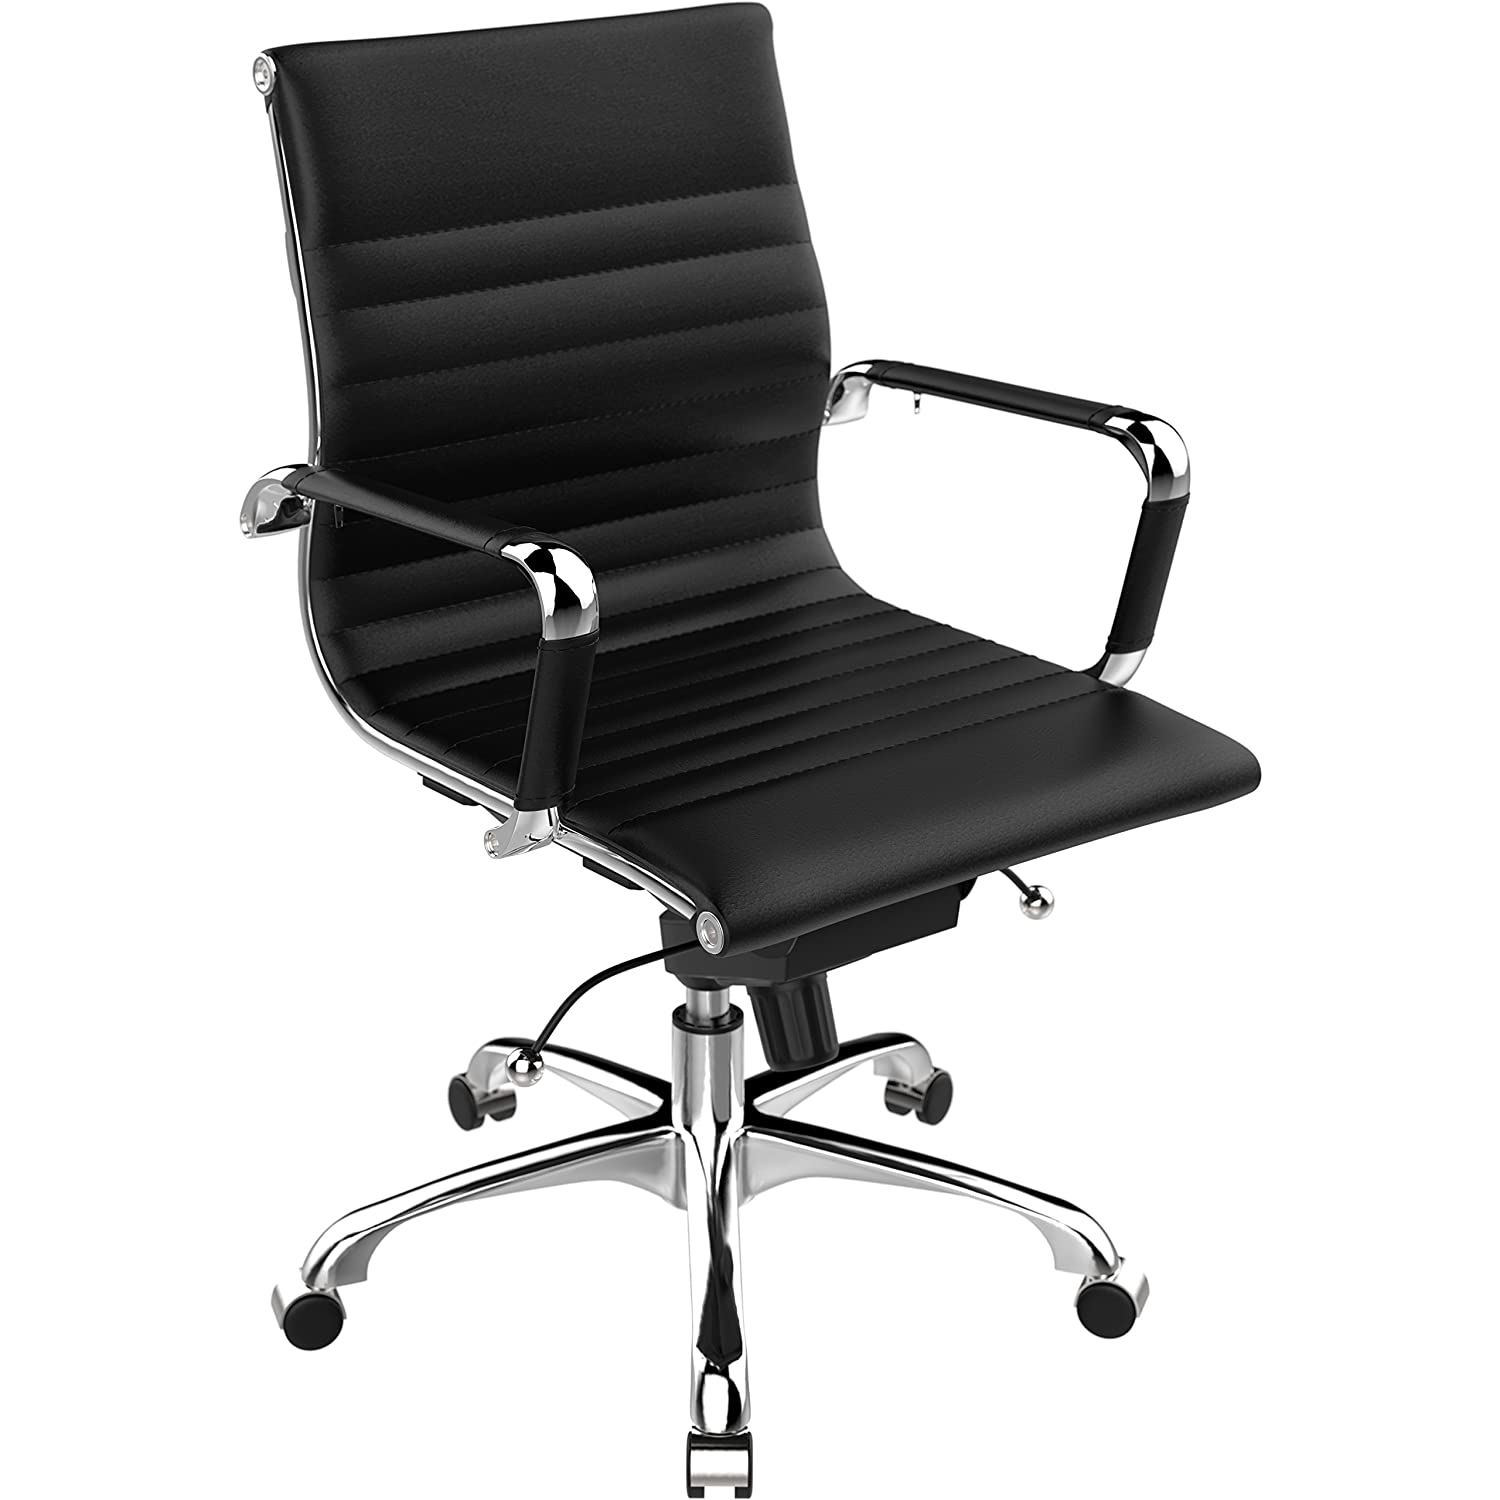 Poly and Bark Eames Style AG Management Office Chair in Soft Touch Leather - Black